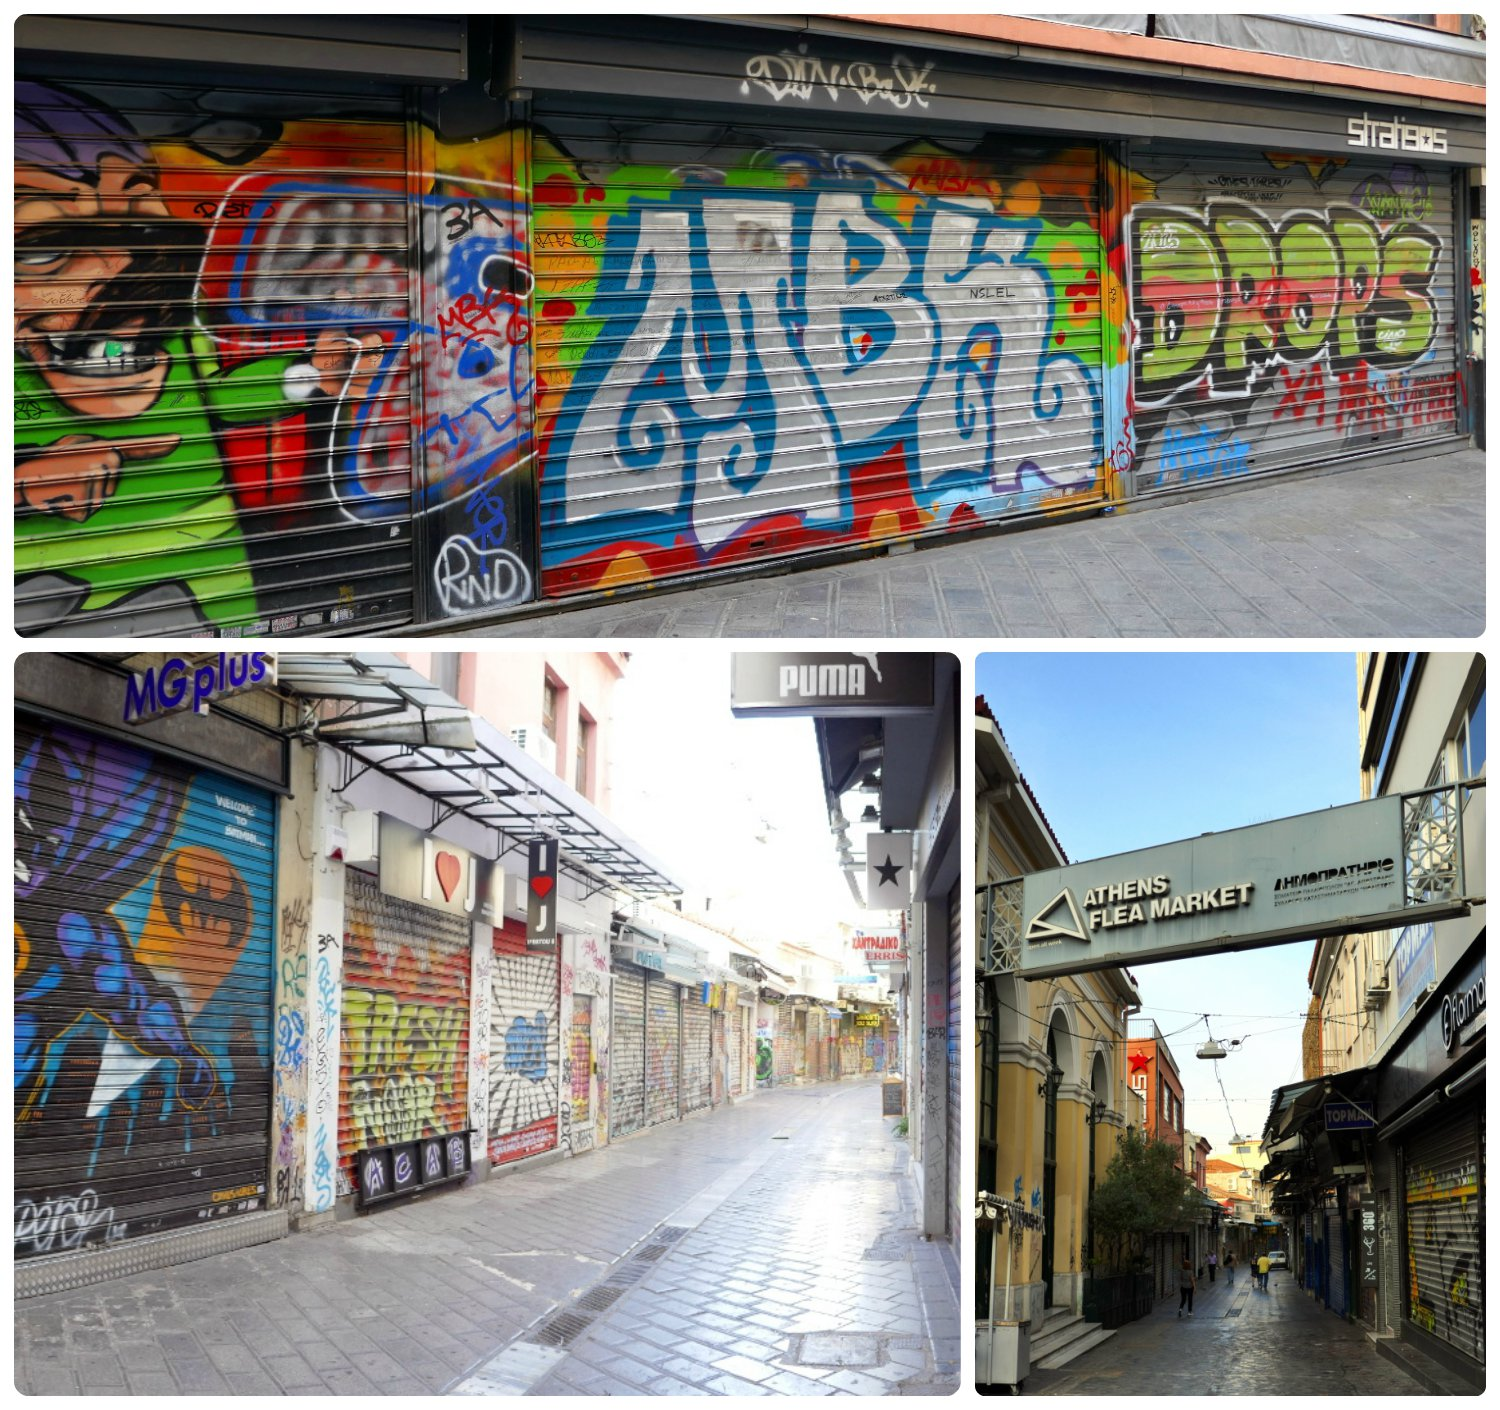 We visited Monastiraki Flea Market in the early morning hours, before the shops were open. We enjoyed exploring the street art that was only visible when the shops are closed, however later in the day, this area was bustling with people!